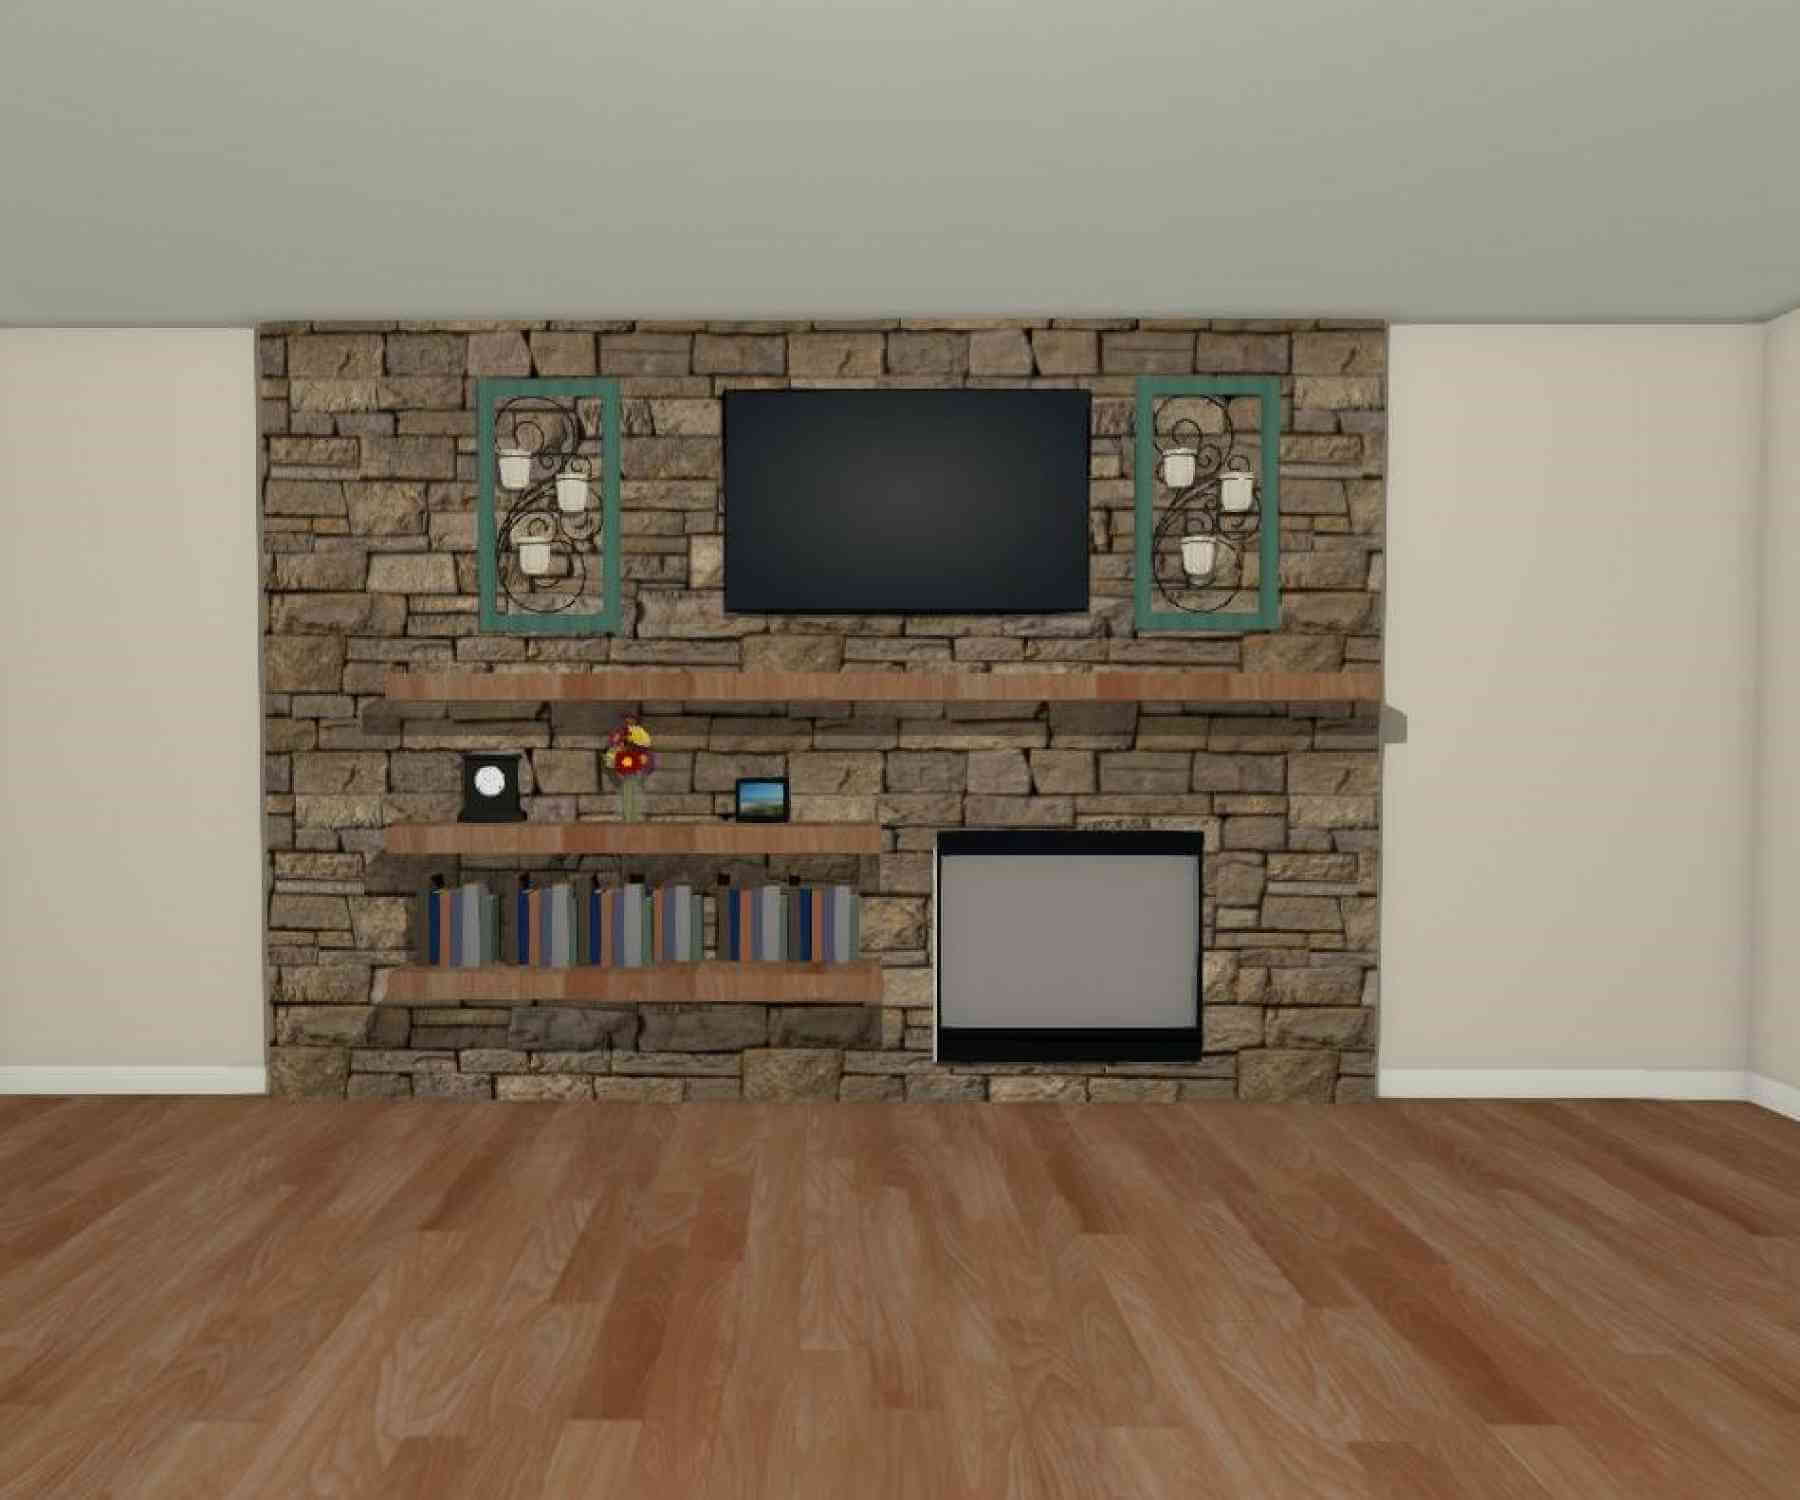 The Fireplace Wall Rendering